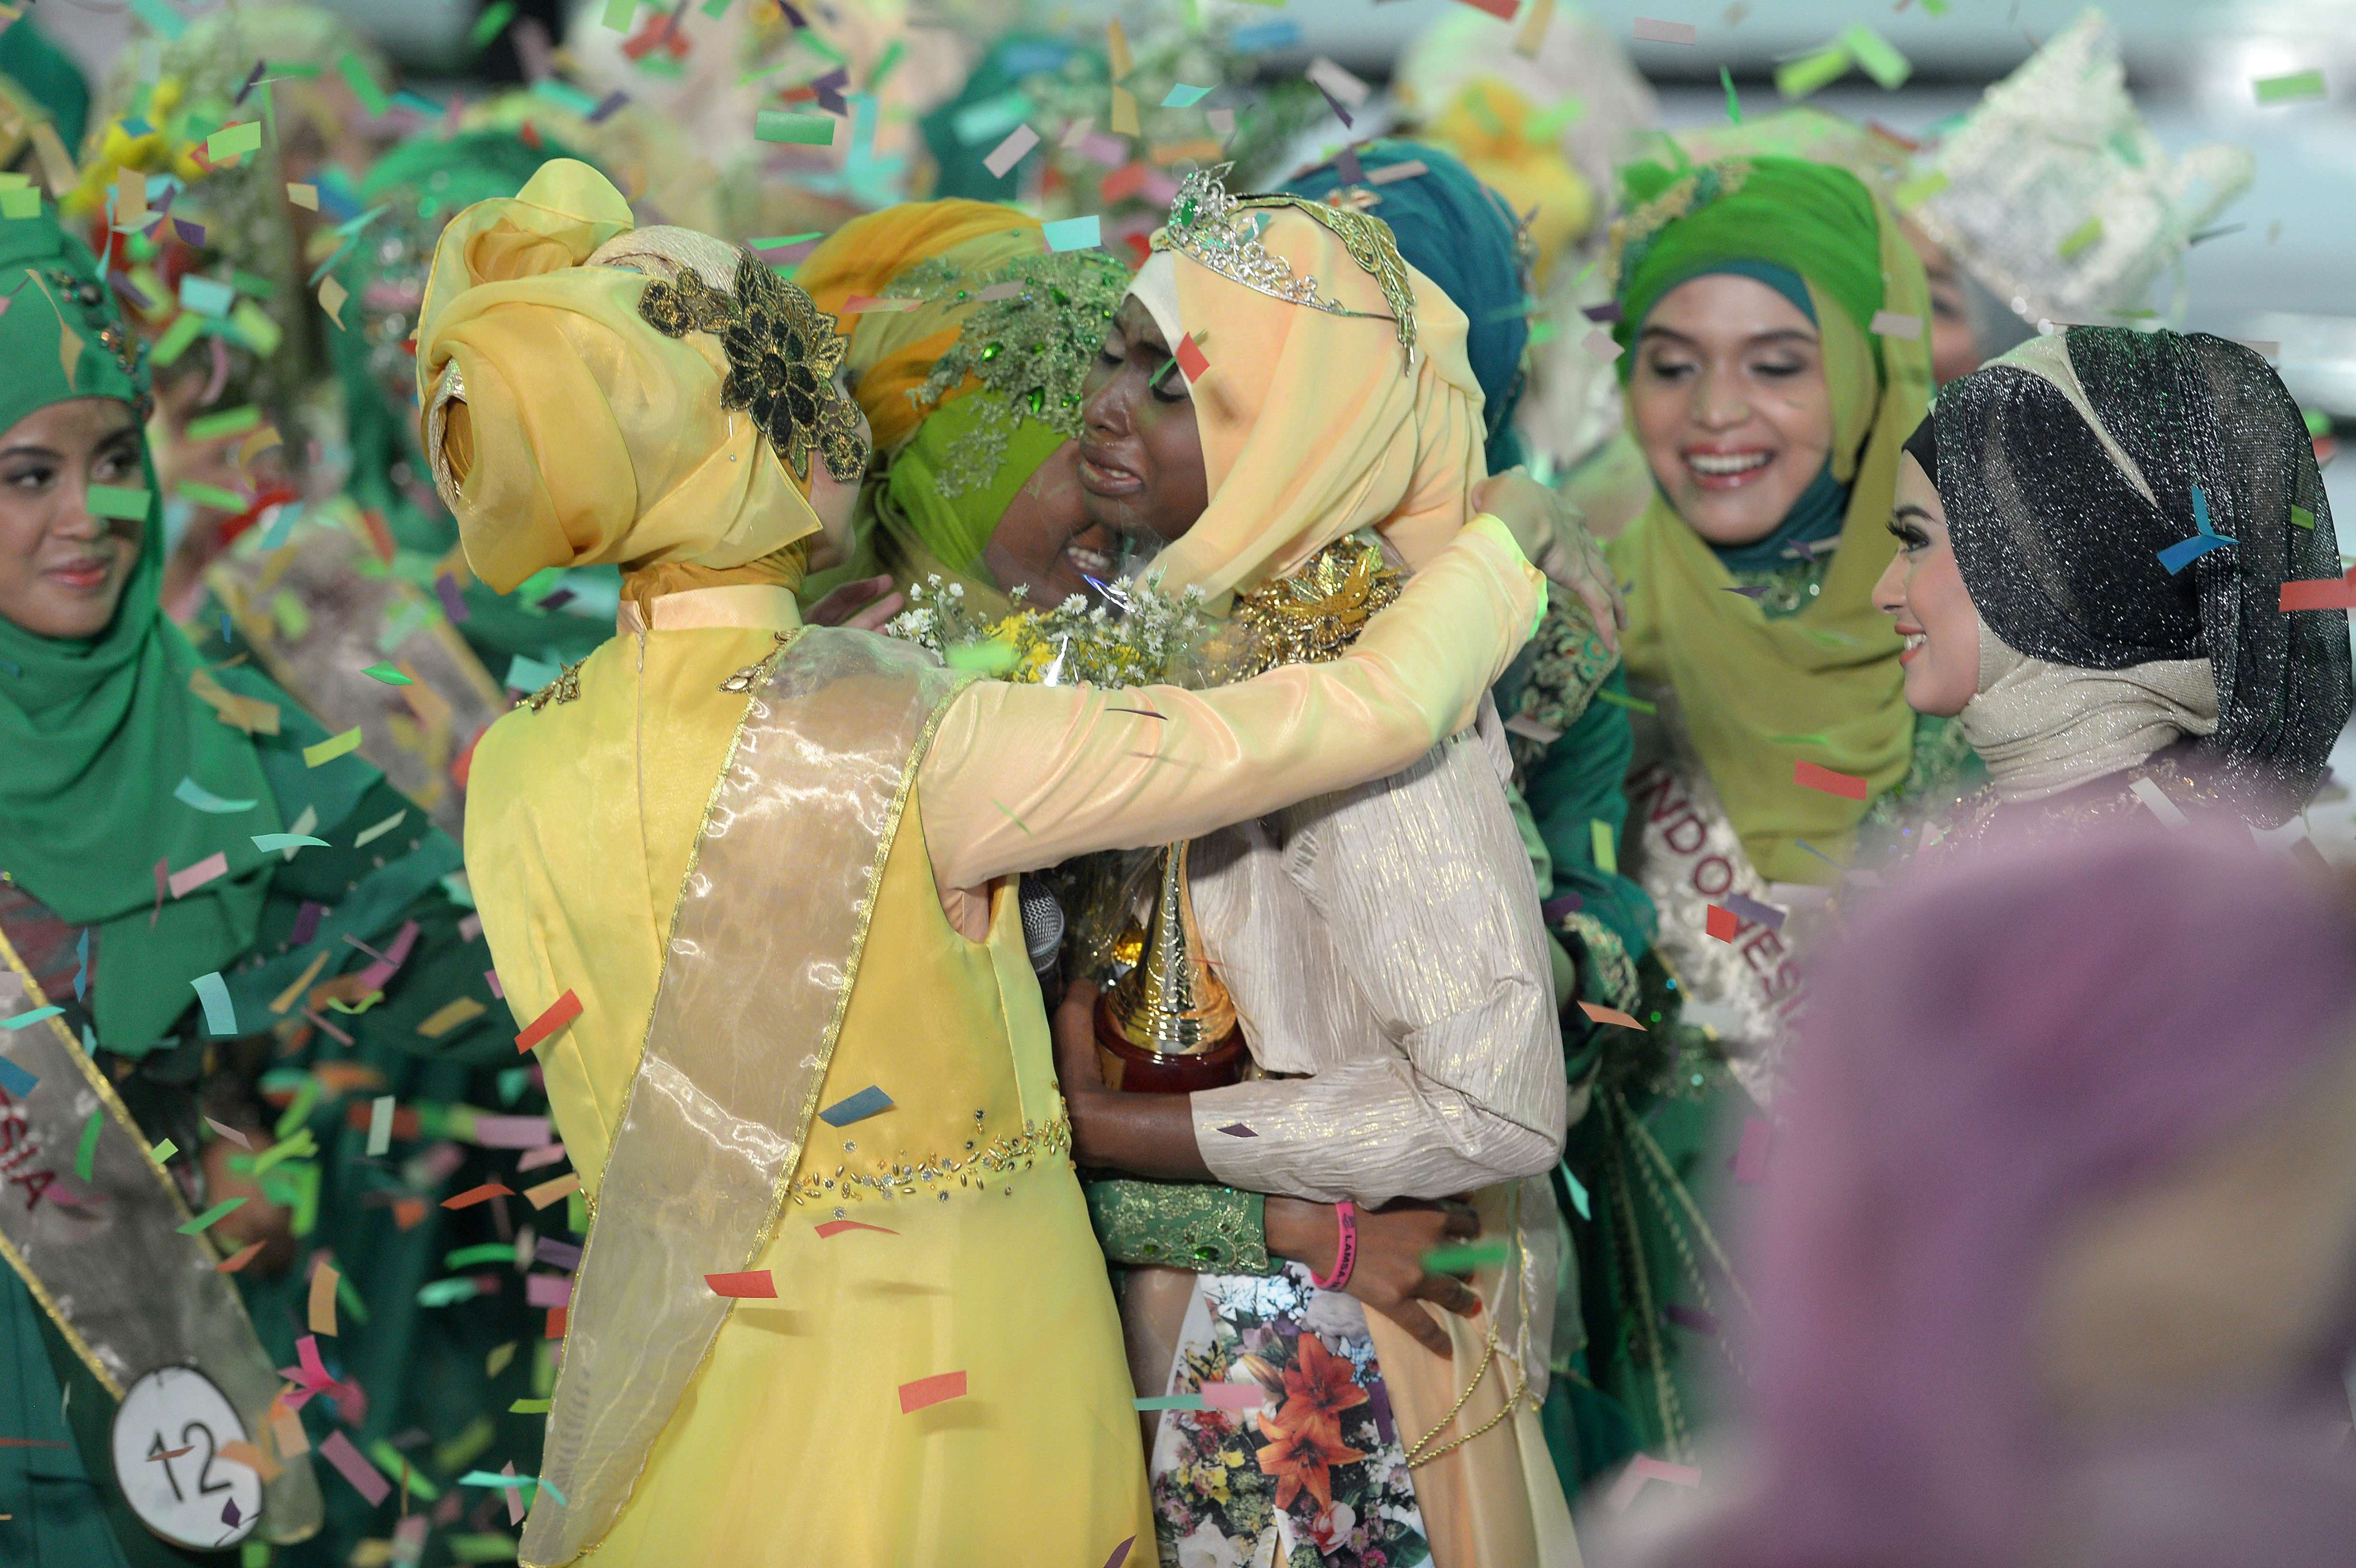 The newly crowned Muslimah World 2013 Obabiyi Aishah Ajibola (C) of Nigeria speaks to the audience during the Muslimah World competition in Jakarta on Sept. 18, 2013.  (AFP)